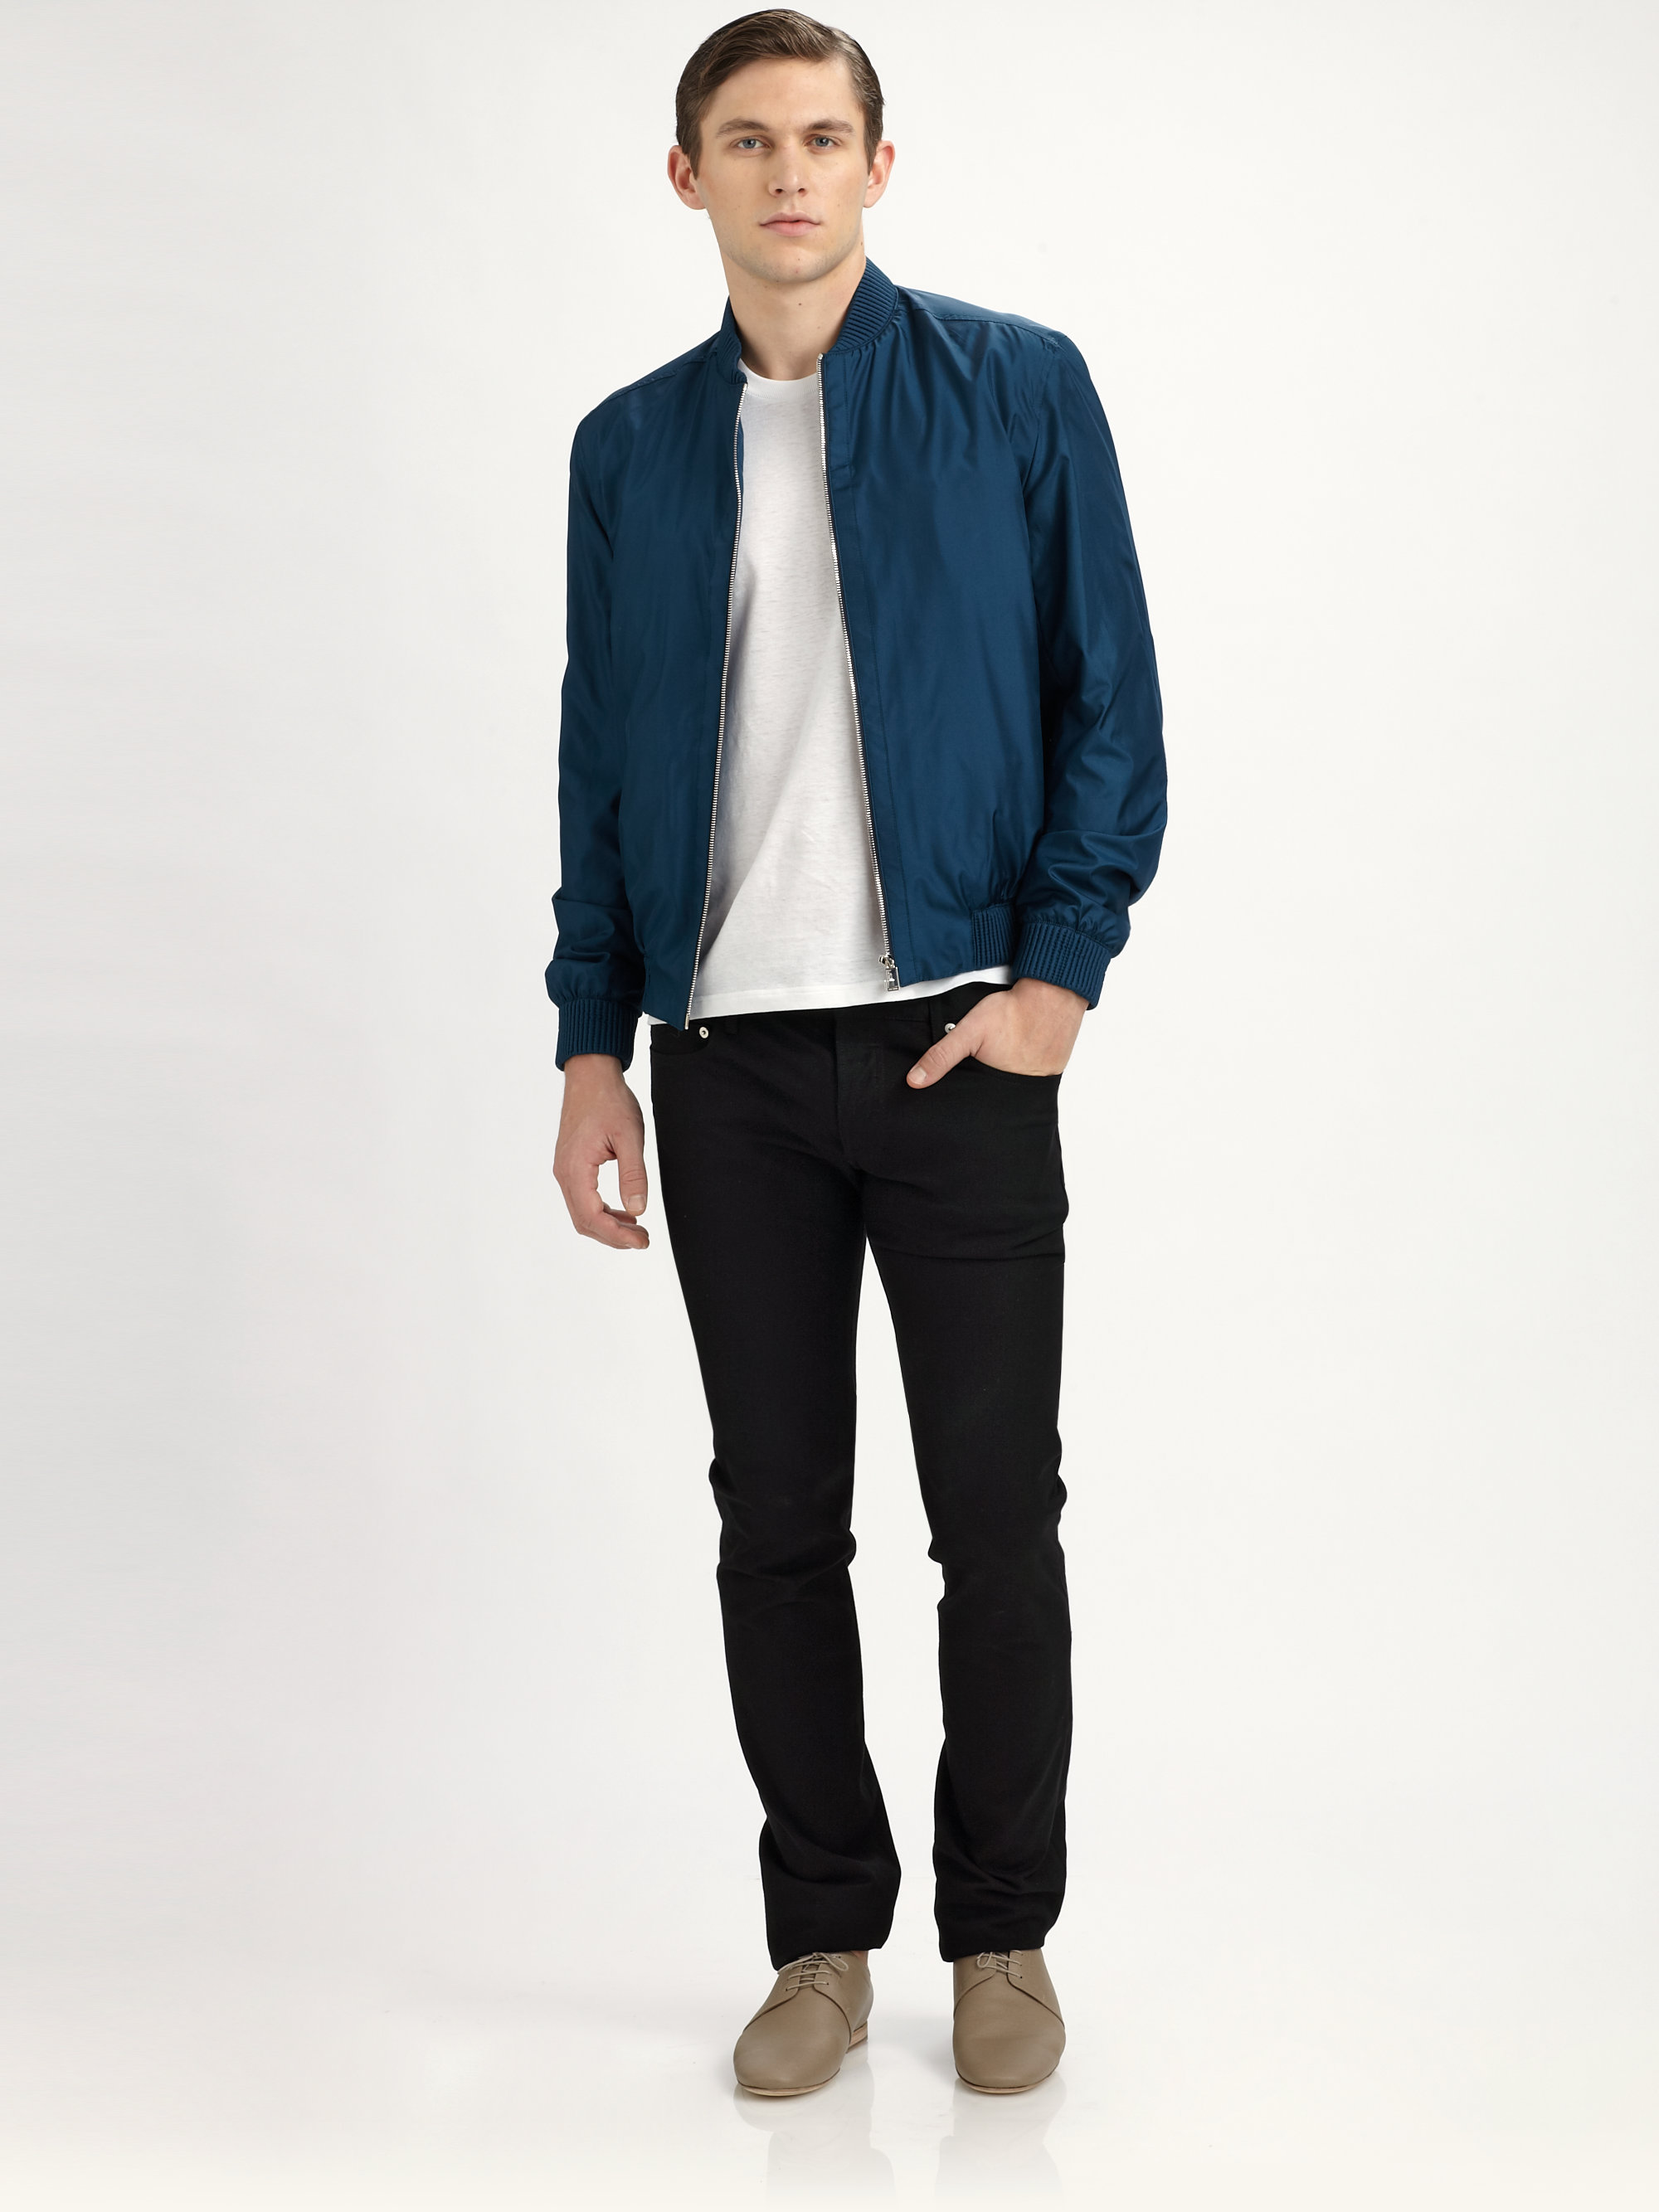 Dior homme Silk Bomber Jacket in Blue for Men | Lyst